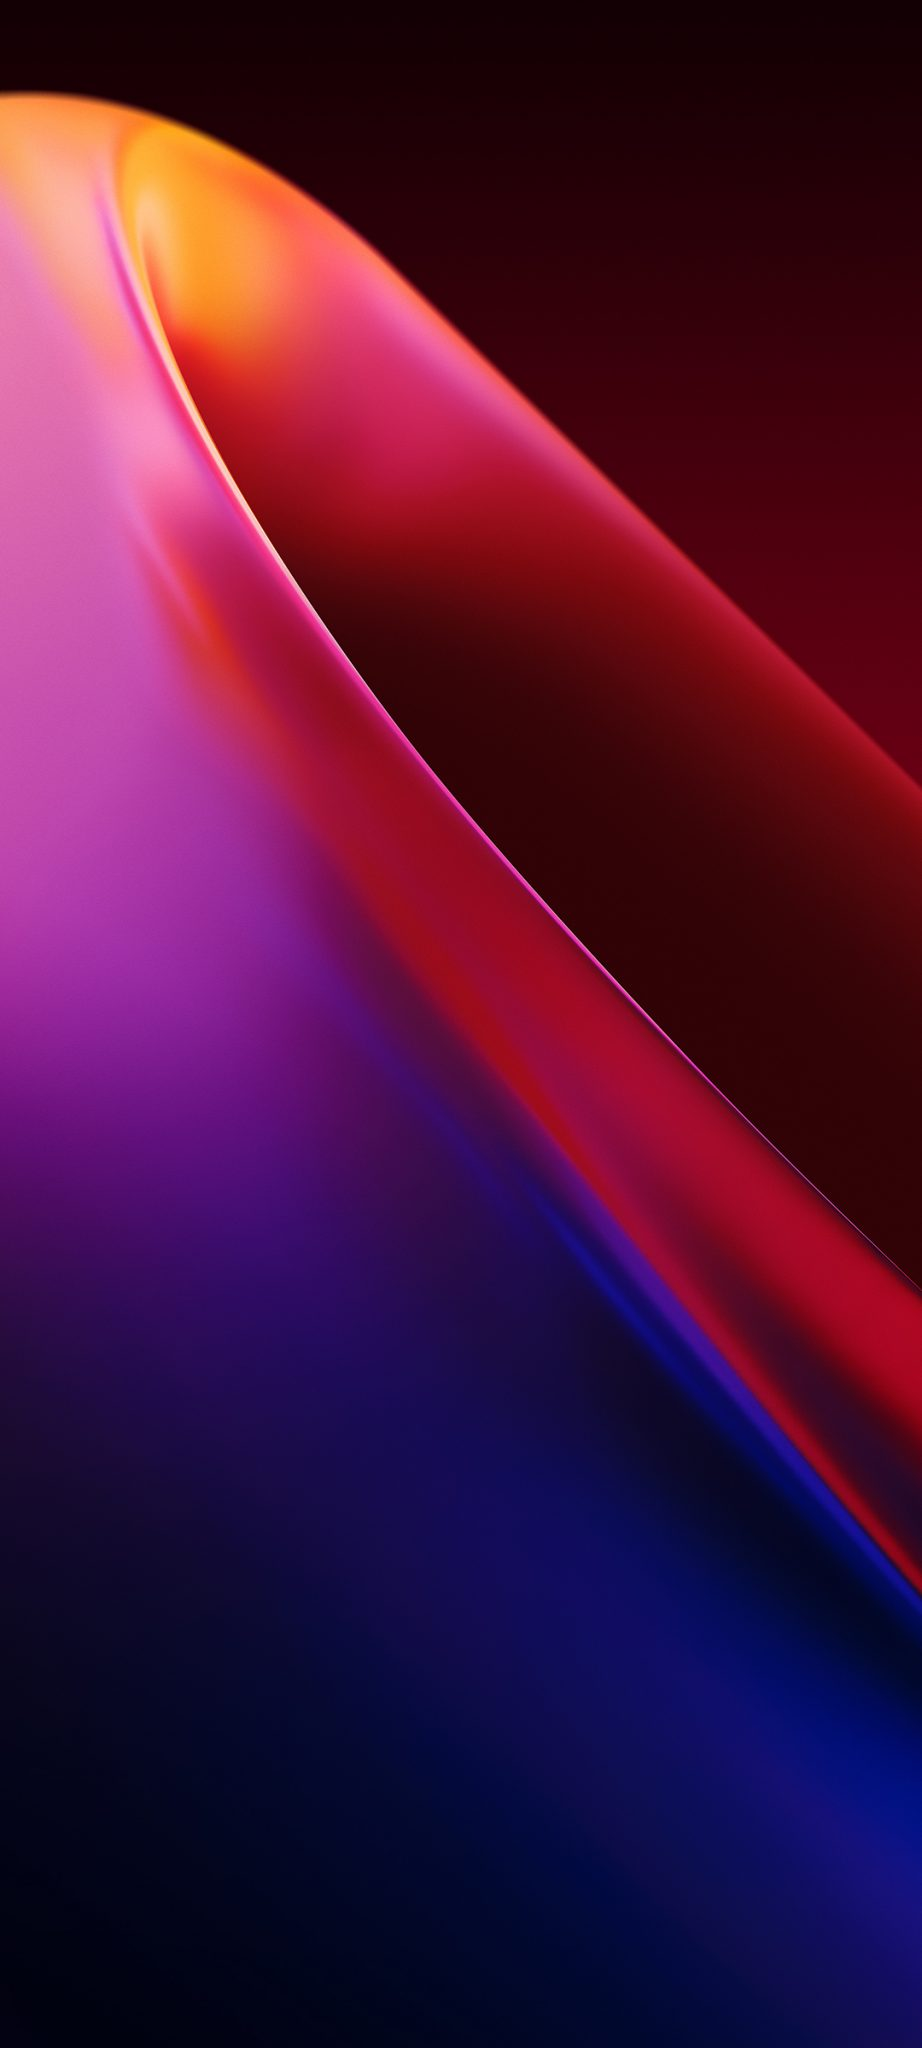 OnePlus-Nord-wallpaper-08